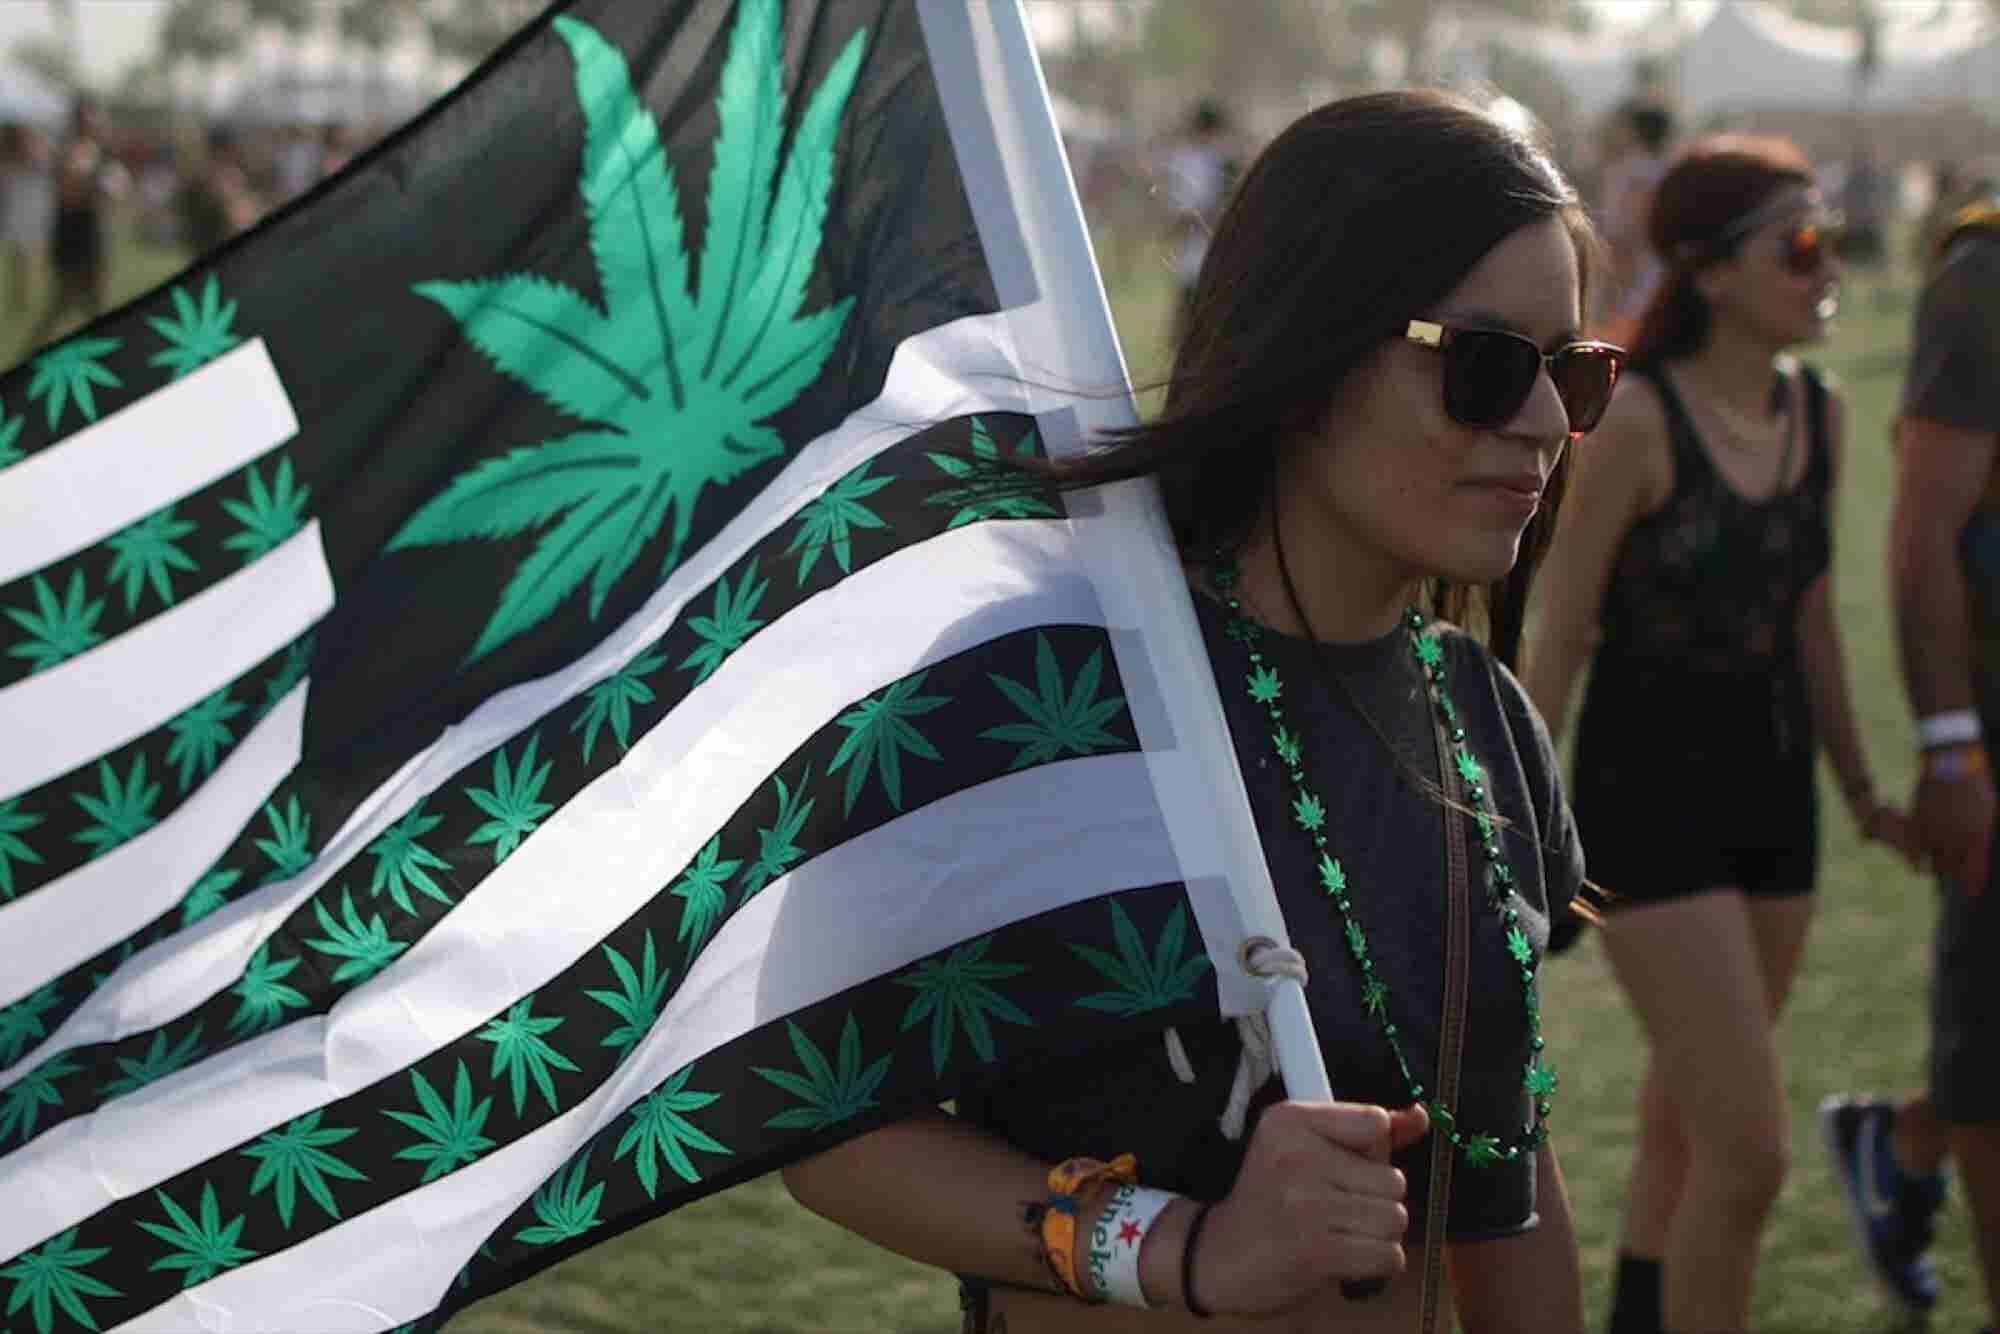 It's Lit! Cannabis Trends and the Pitfalls of 'Potrepreneurship.'